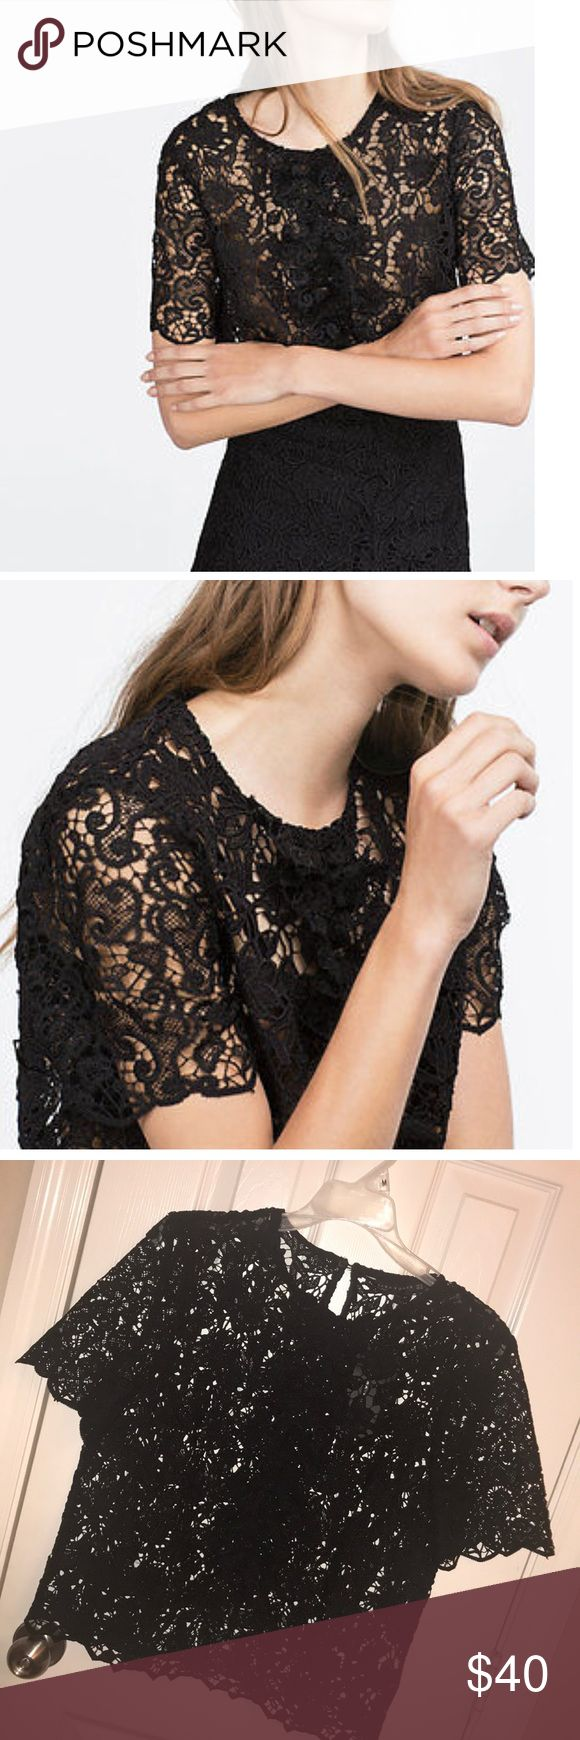 Black Guipure Lace Ruffle Zara Woman Blouse Beautiful black guipure lace ruffle blouse from Zara Woman collection. There is no lining, so an undershirt is necessary depending on how you are styling the blouse. The detailing is spectacular. Wear it with a skirt or pants- very versatile! Zara Tops Blouses